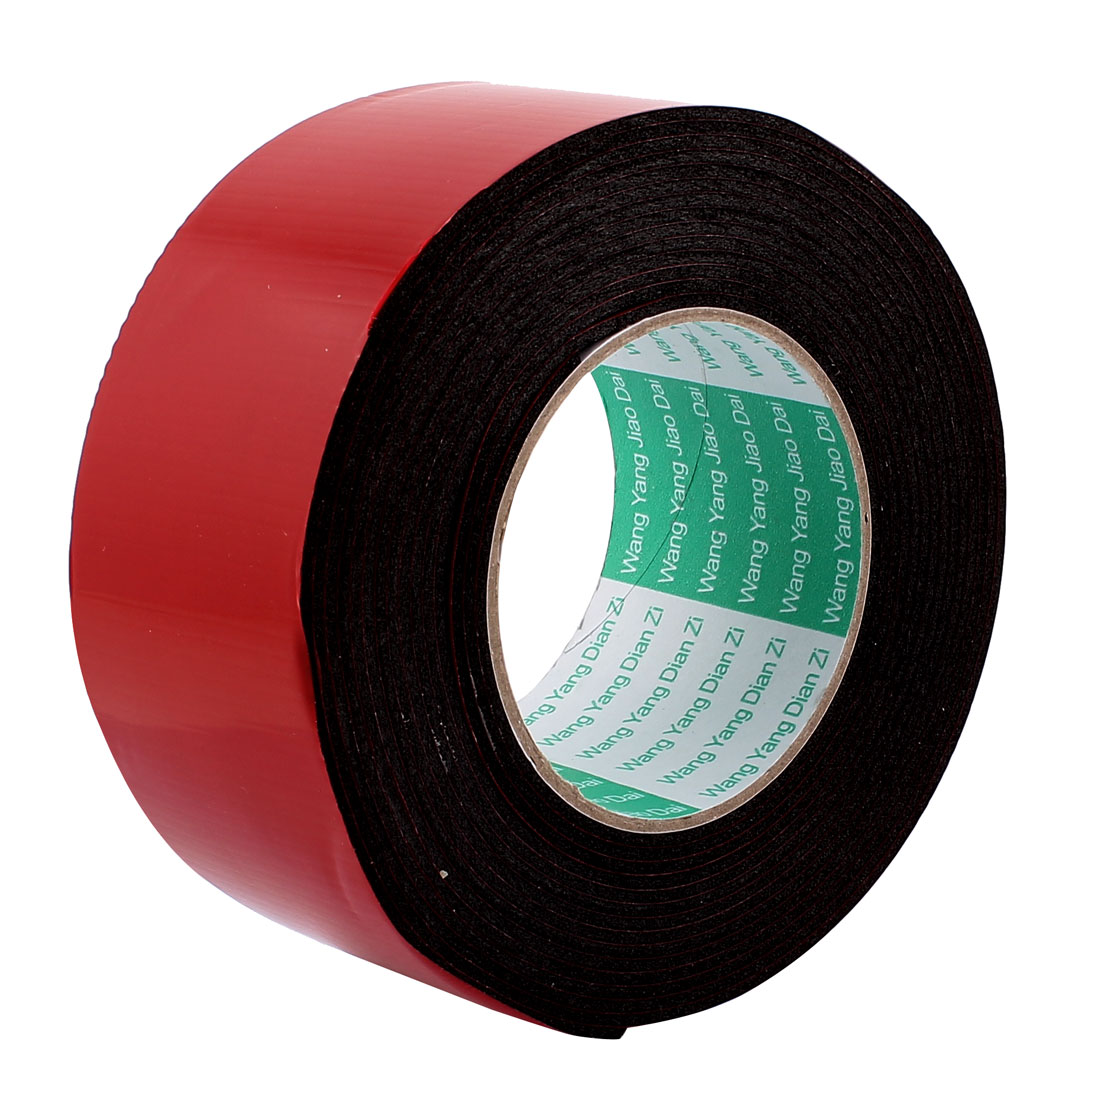 60mmx2mm Double Sided Sponge Tape Adhesive Sticker Foam Glue Strip Sealing 5 Meters